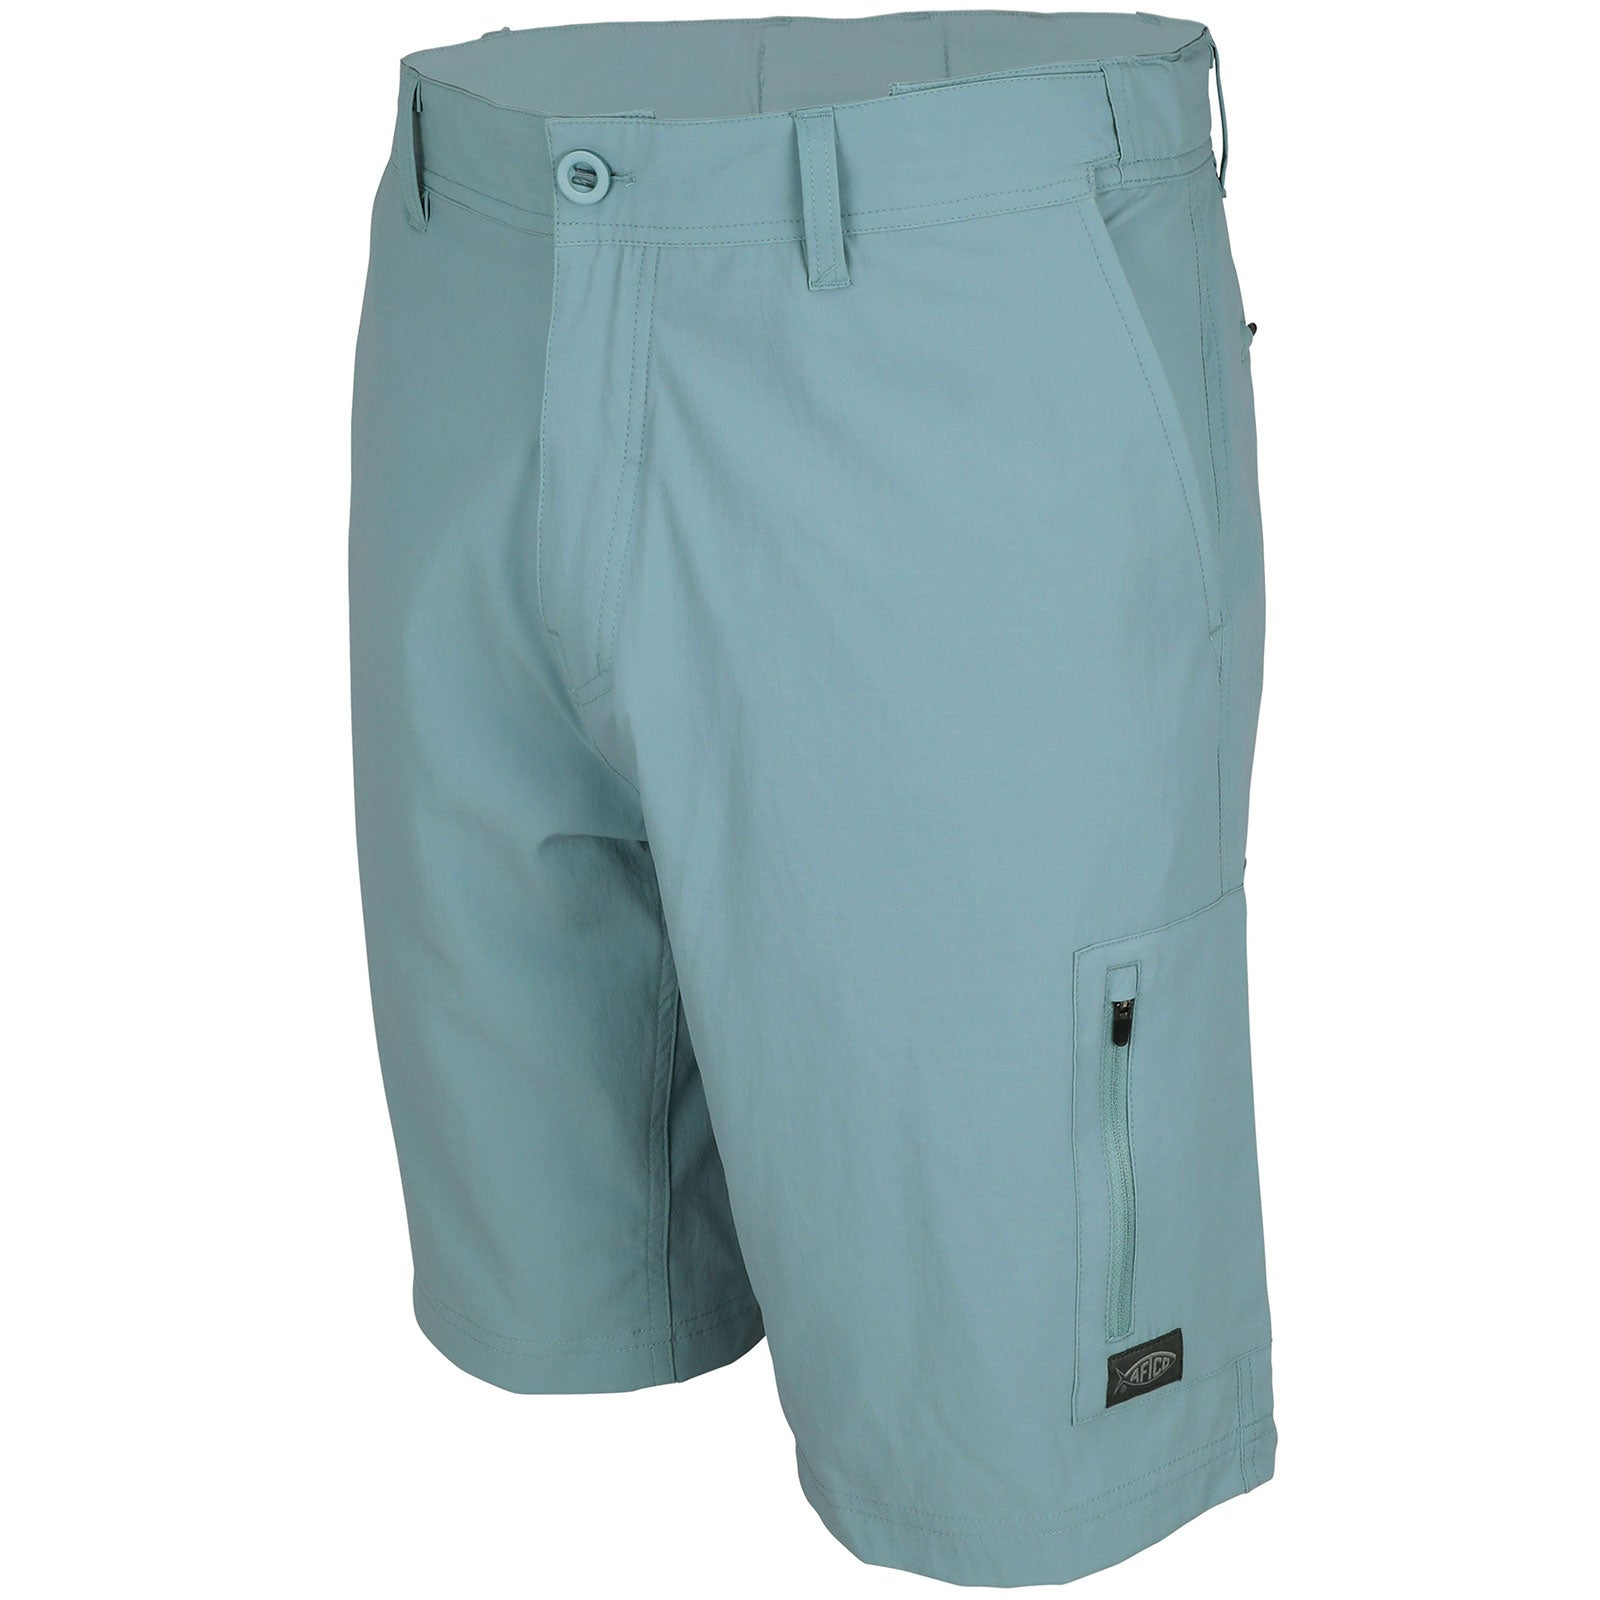 AFTCO's Rescue Cargo Fishing Shorts